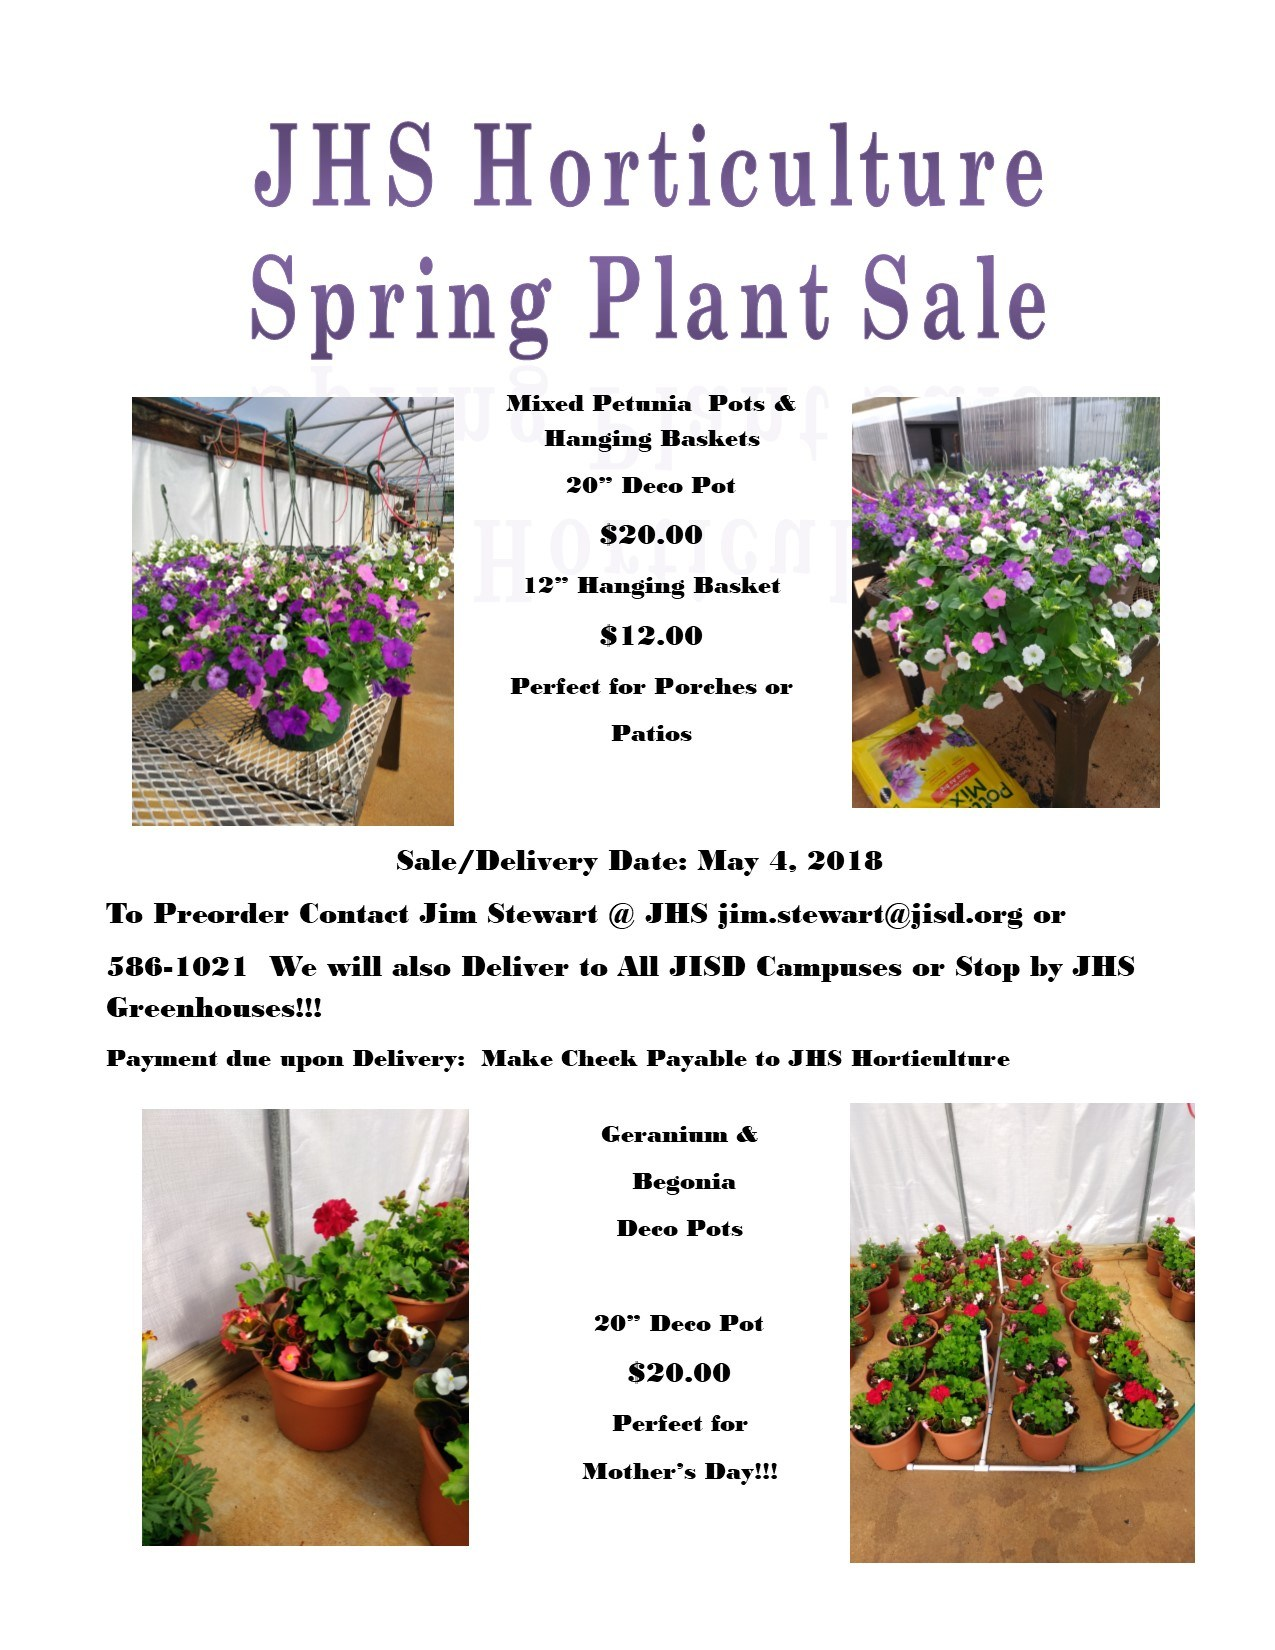 flyer for plant sale for JHS Horticulture